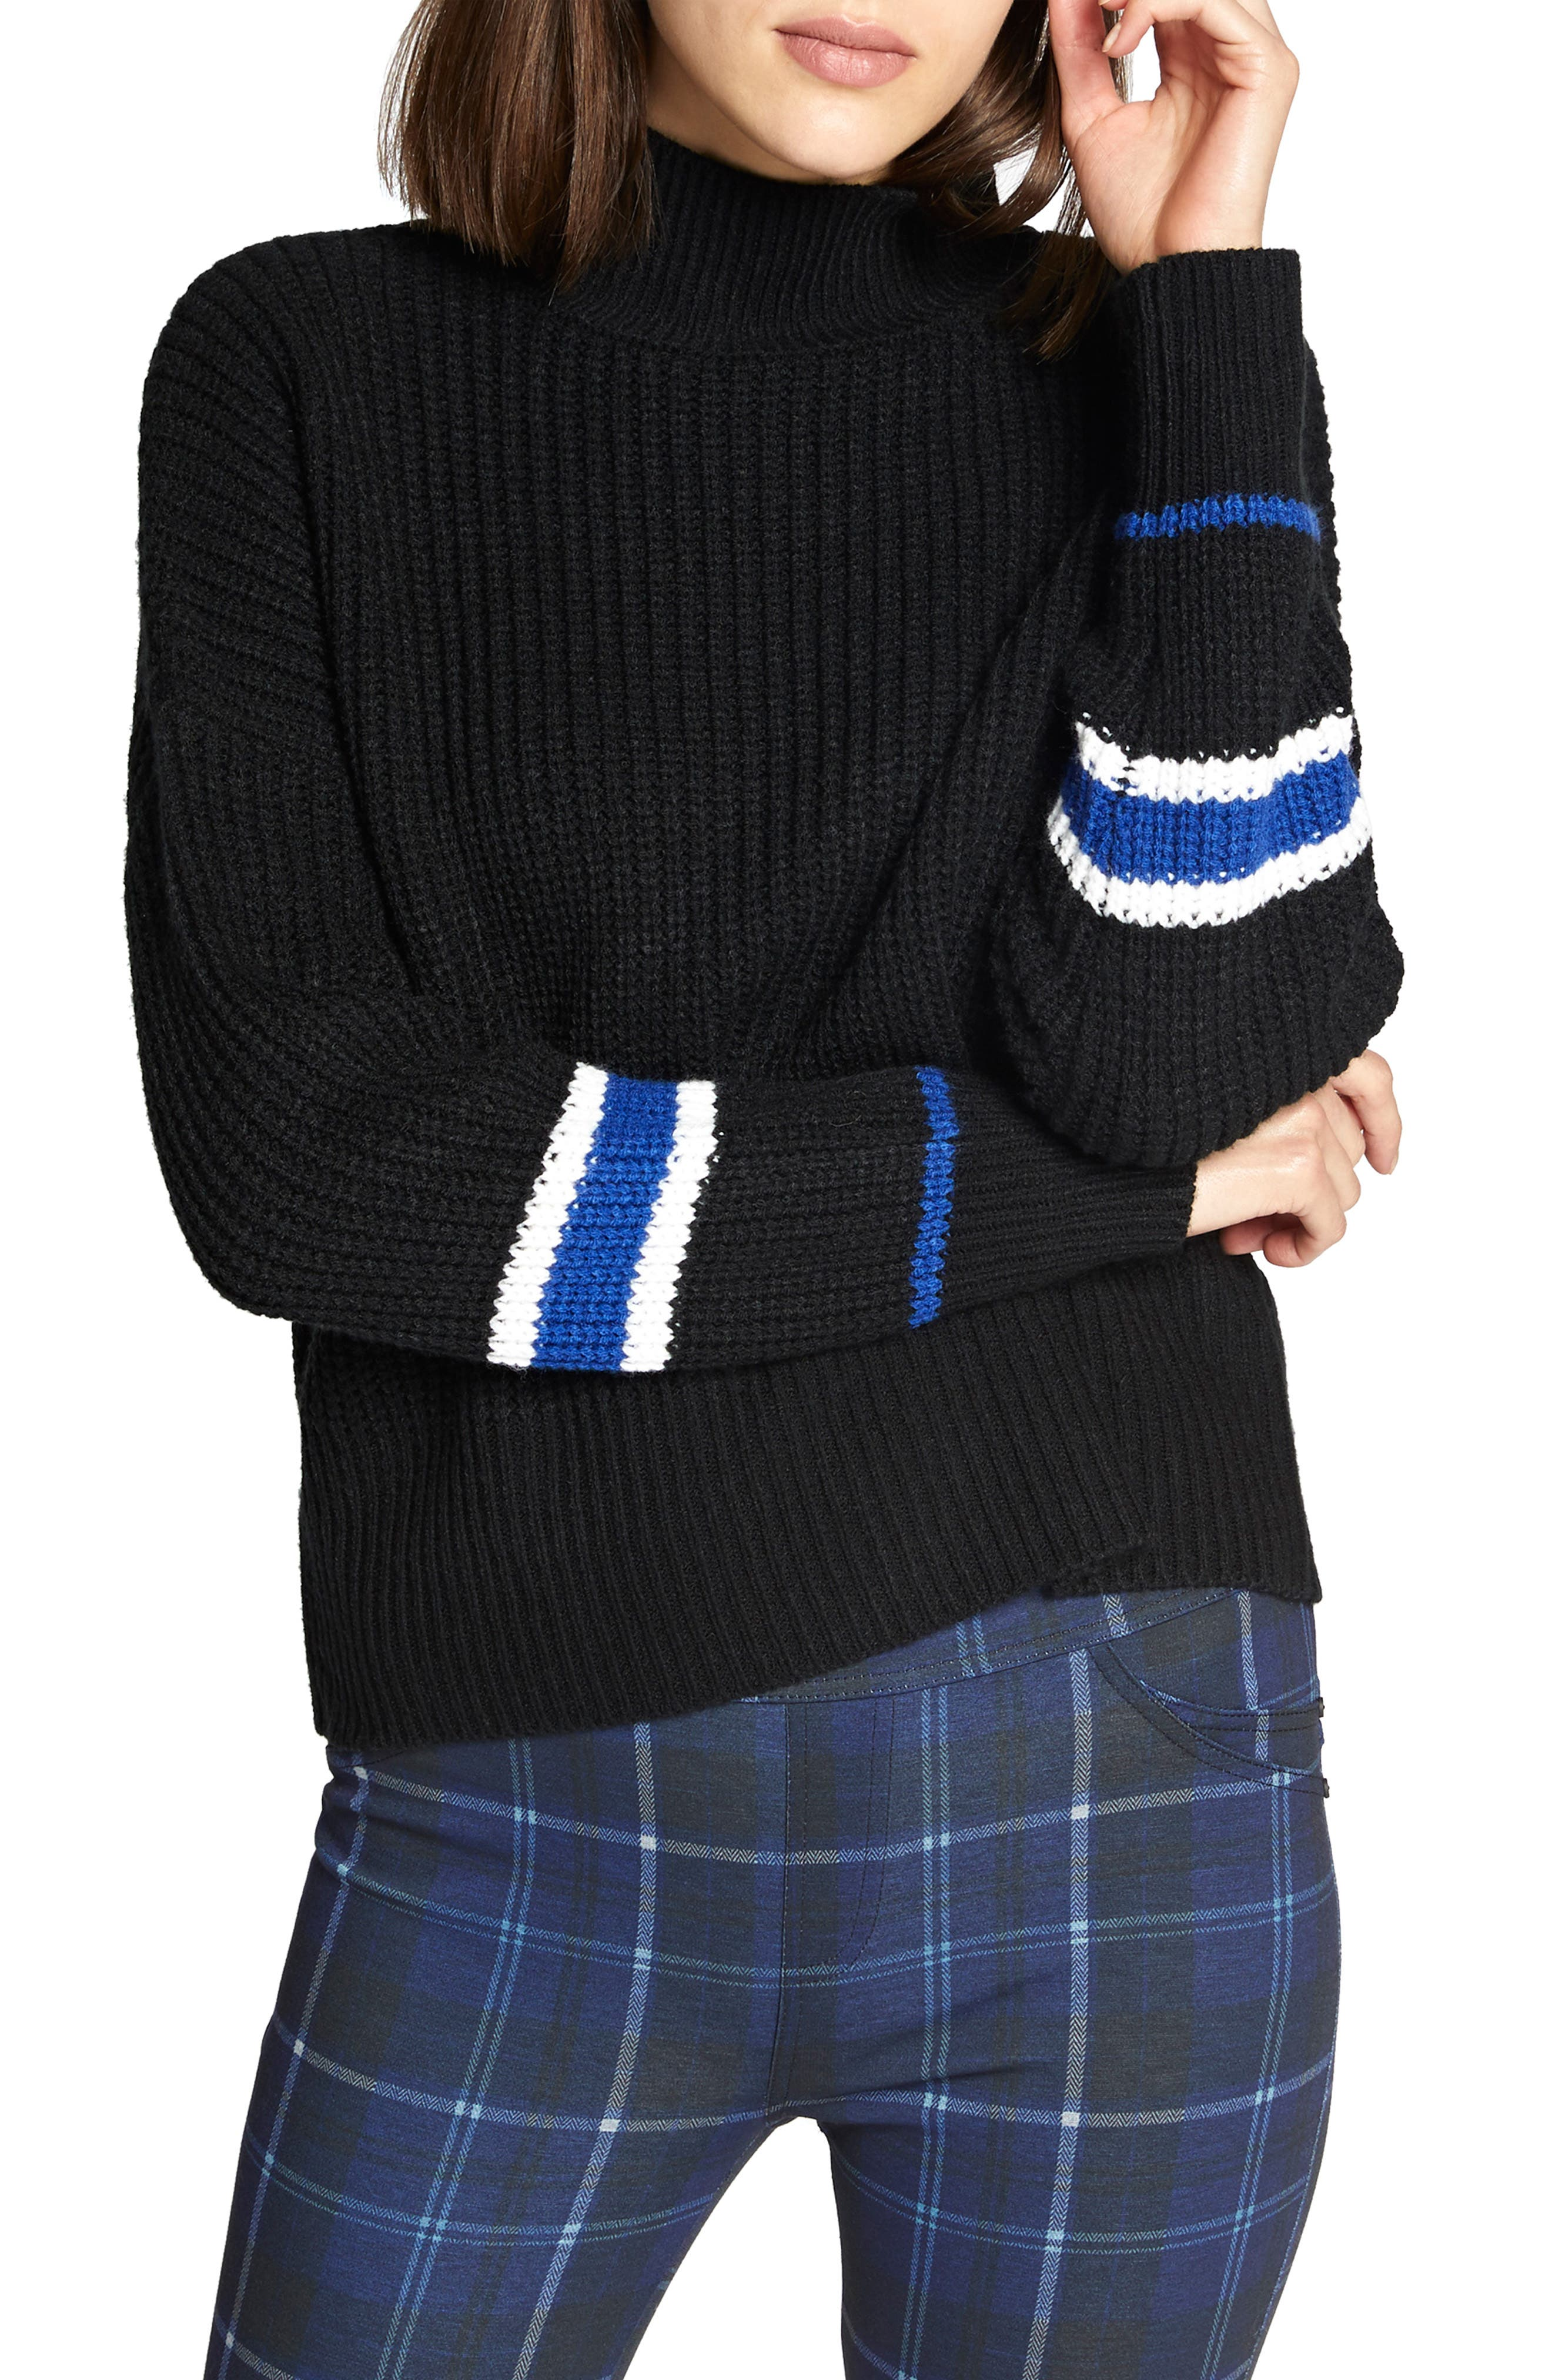 Speedway Sweater,                             Main thumbnail 1, color,                             BLACK